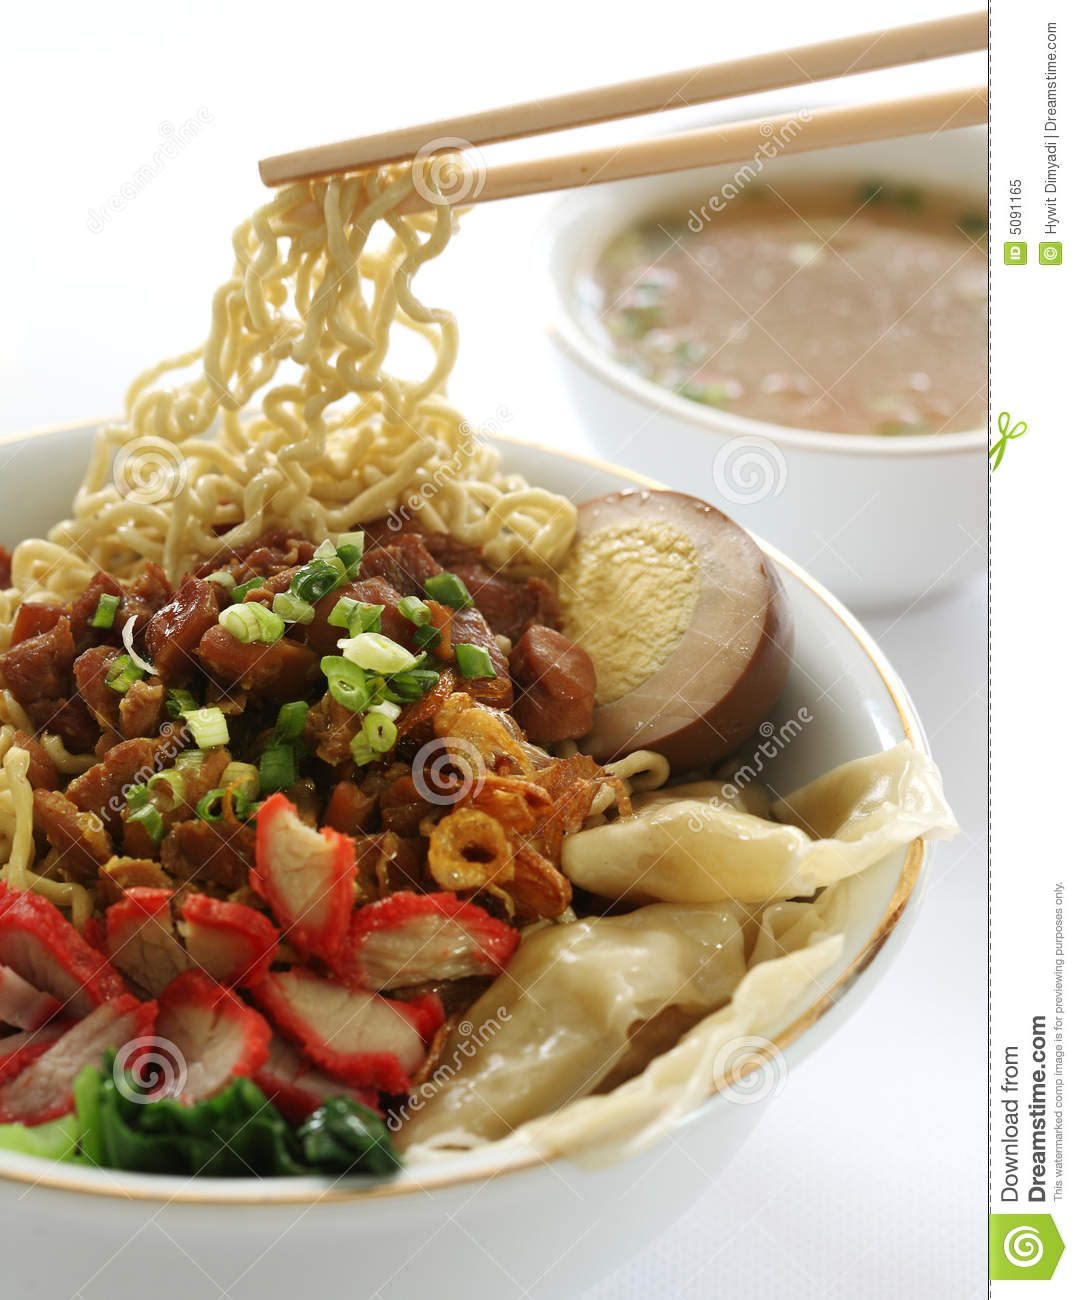 Chinese noodle soup royalty free stock photo image 5091165